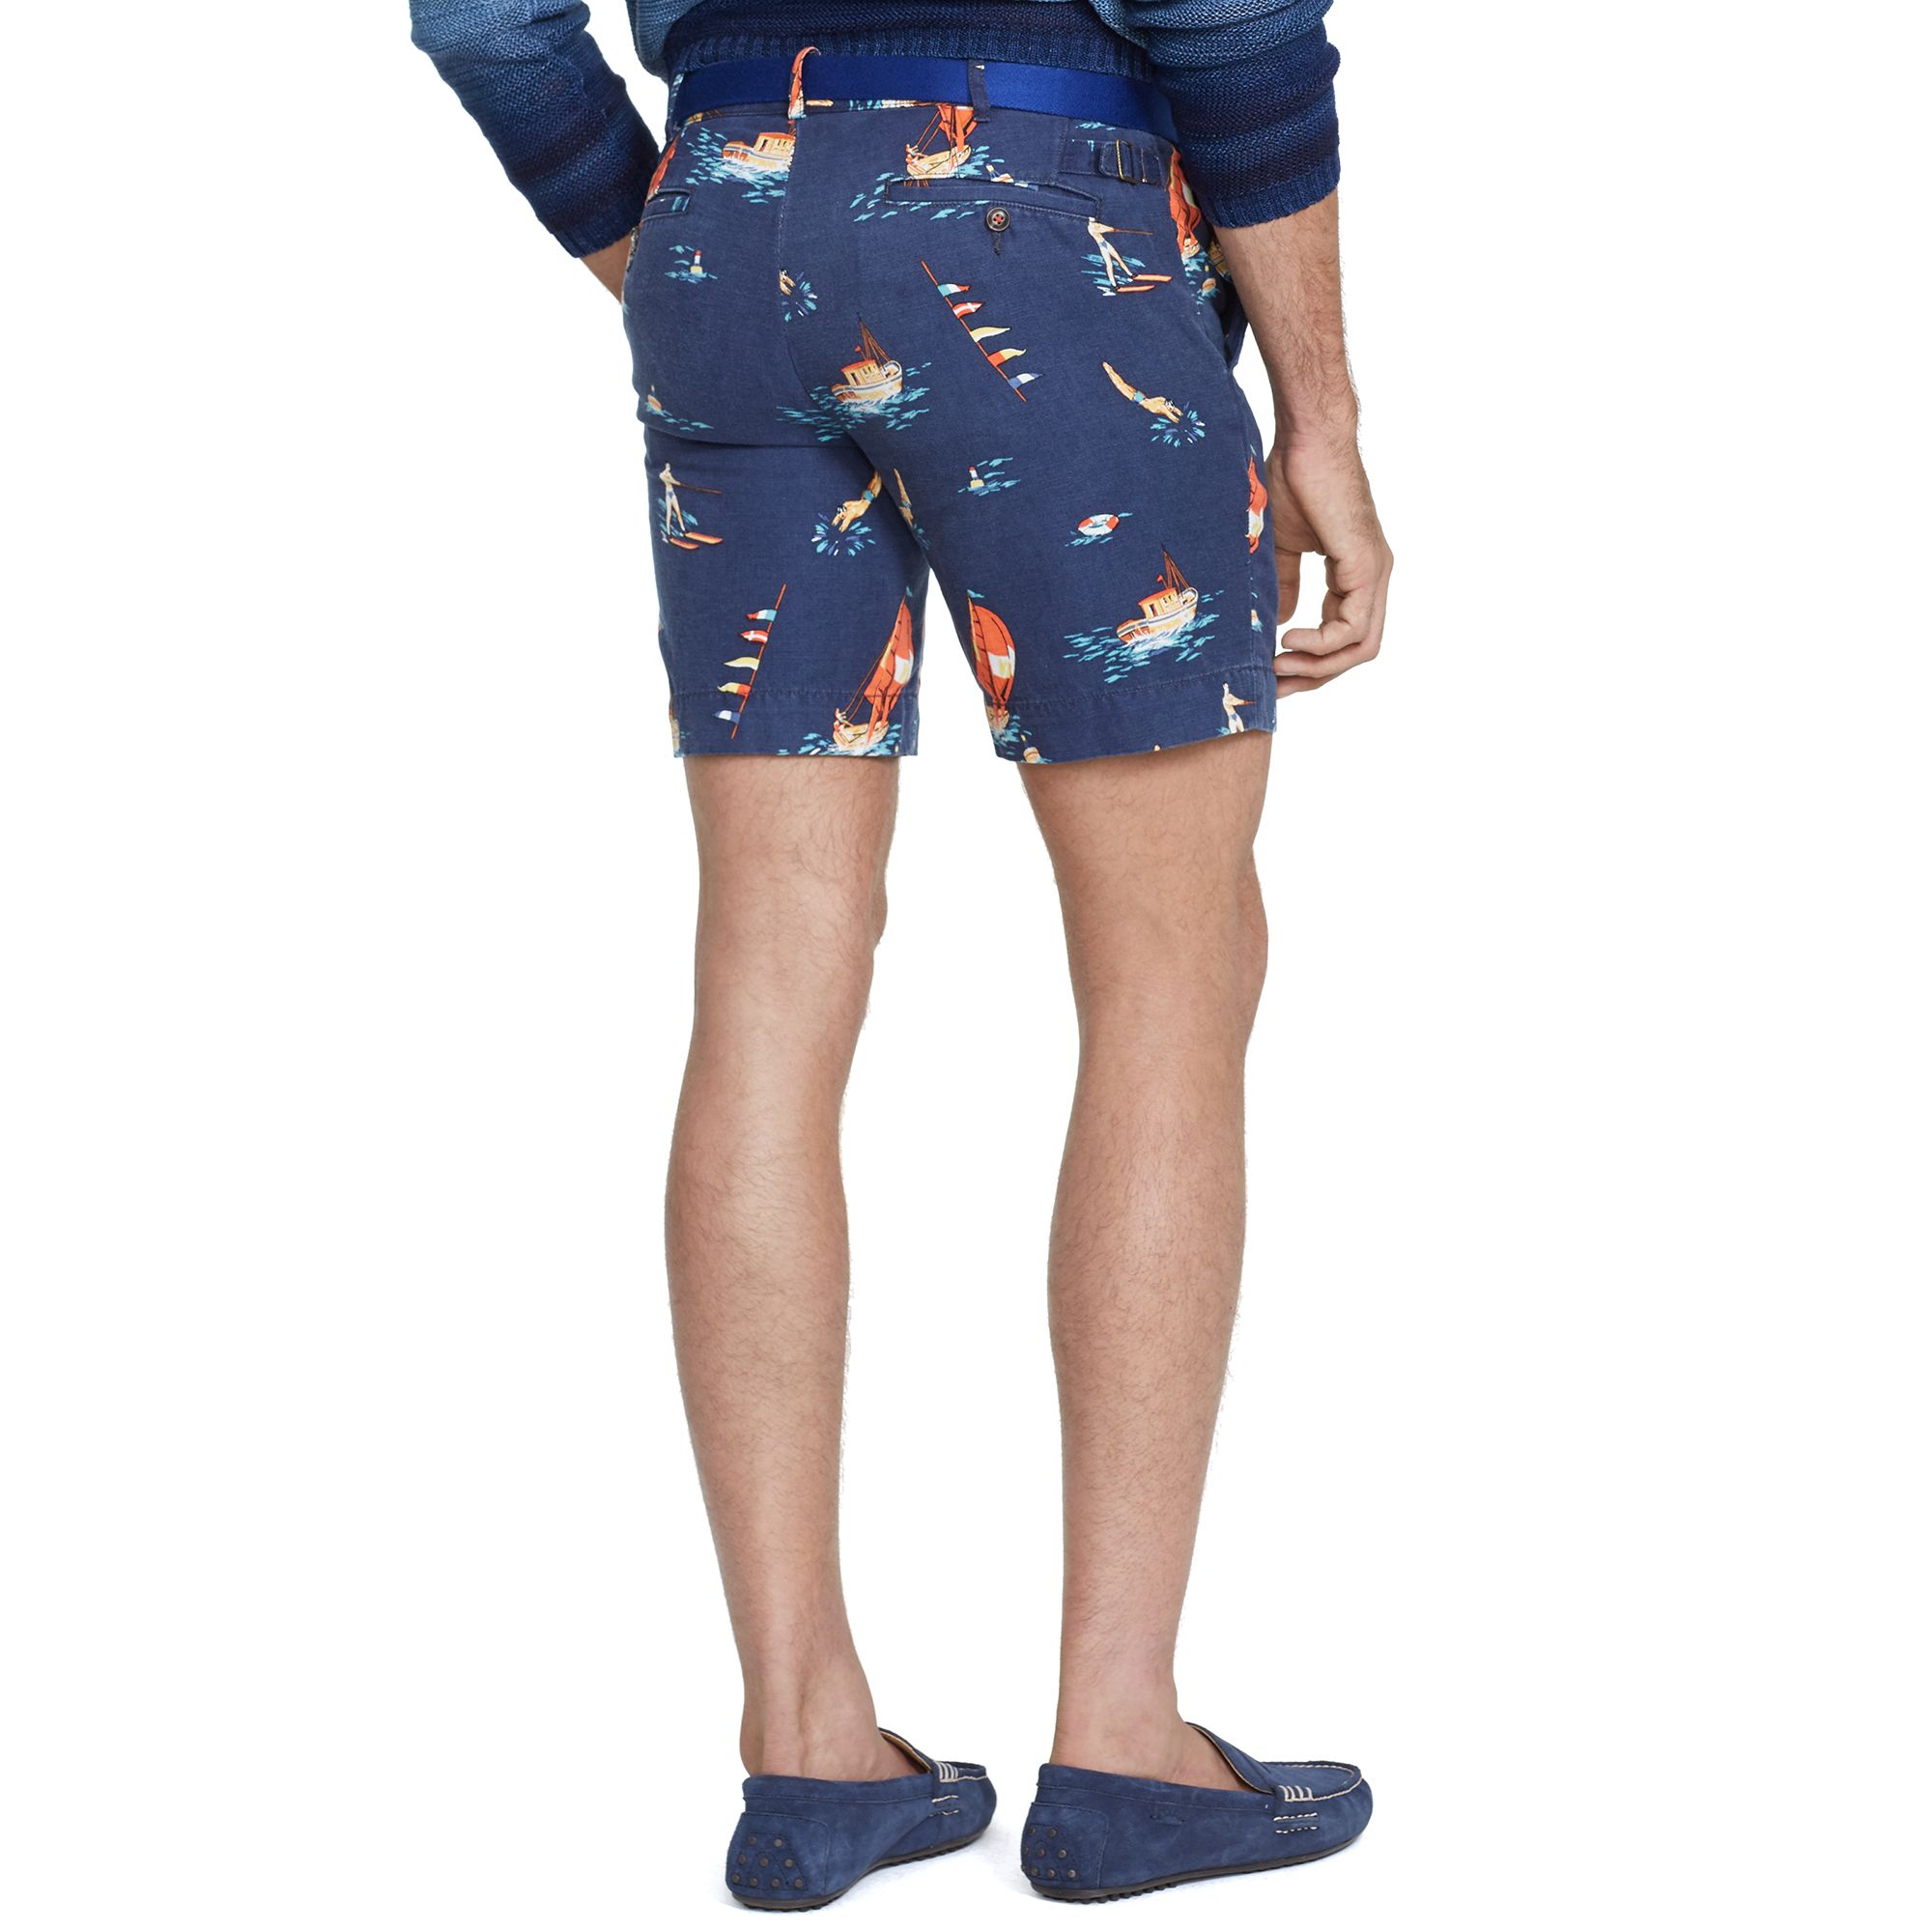 84f3e8bb0f ... shorts 7c003 49755; cheap lyst polo ralph lauren straight fit print  short in blue for men 84934 4f047